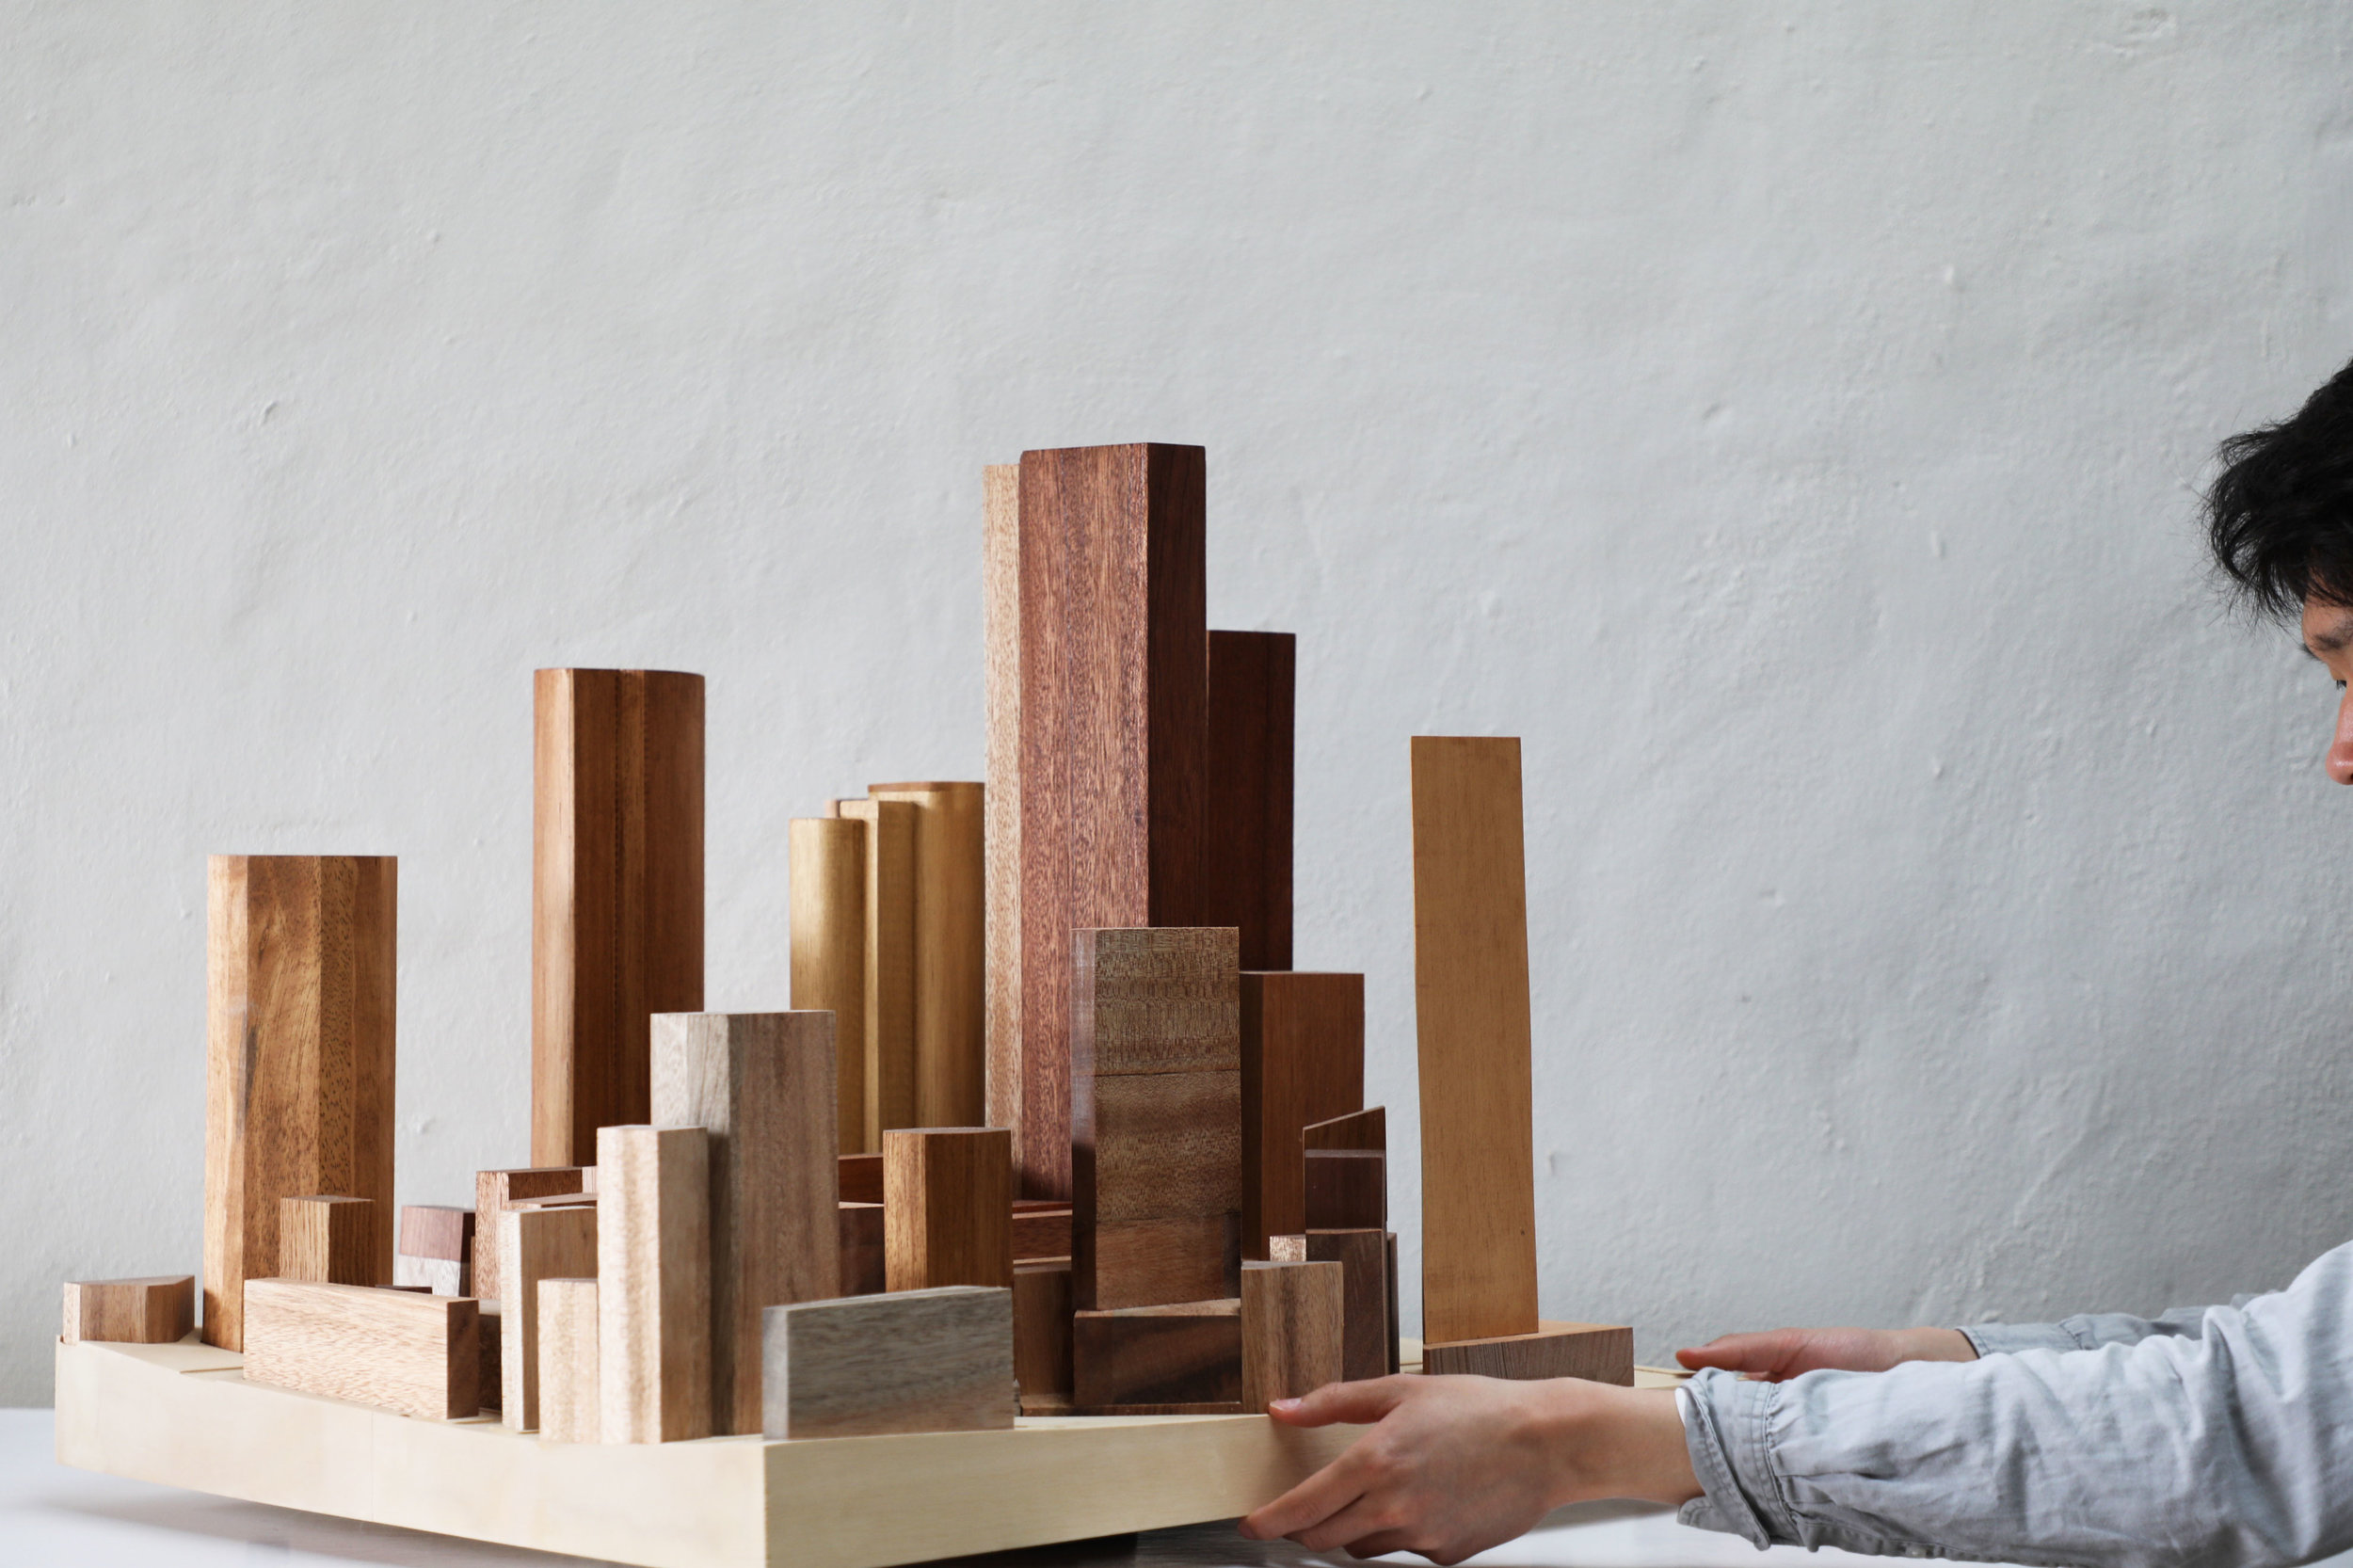 Make_models_Sydney_3D_print_scale_architecture_solid_wood_architecturemodel_2.jpg